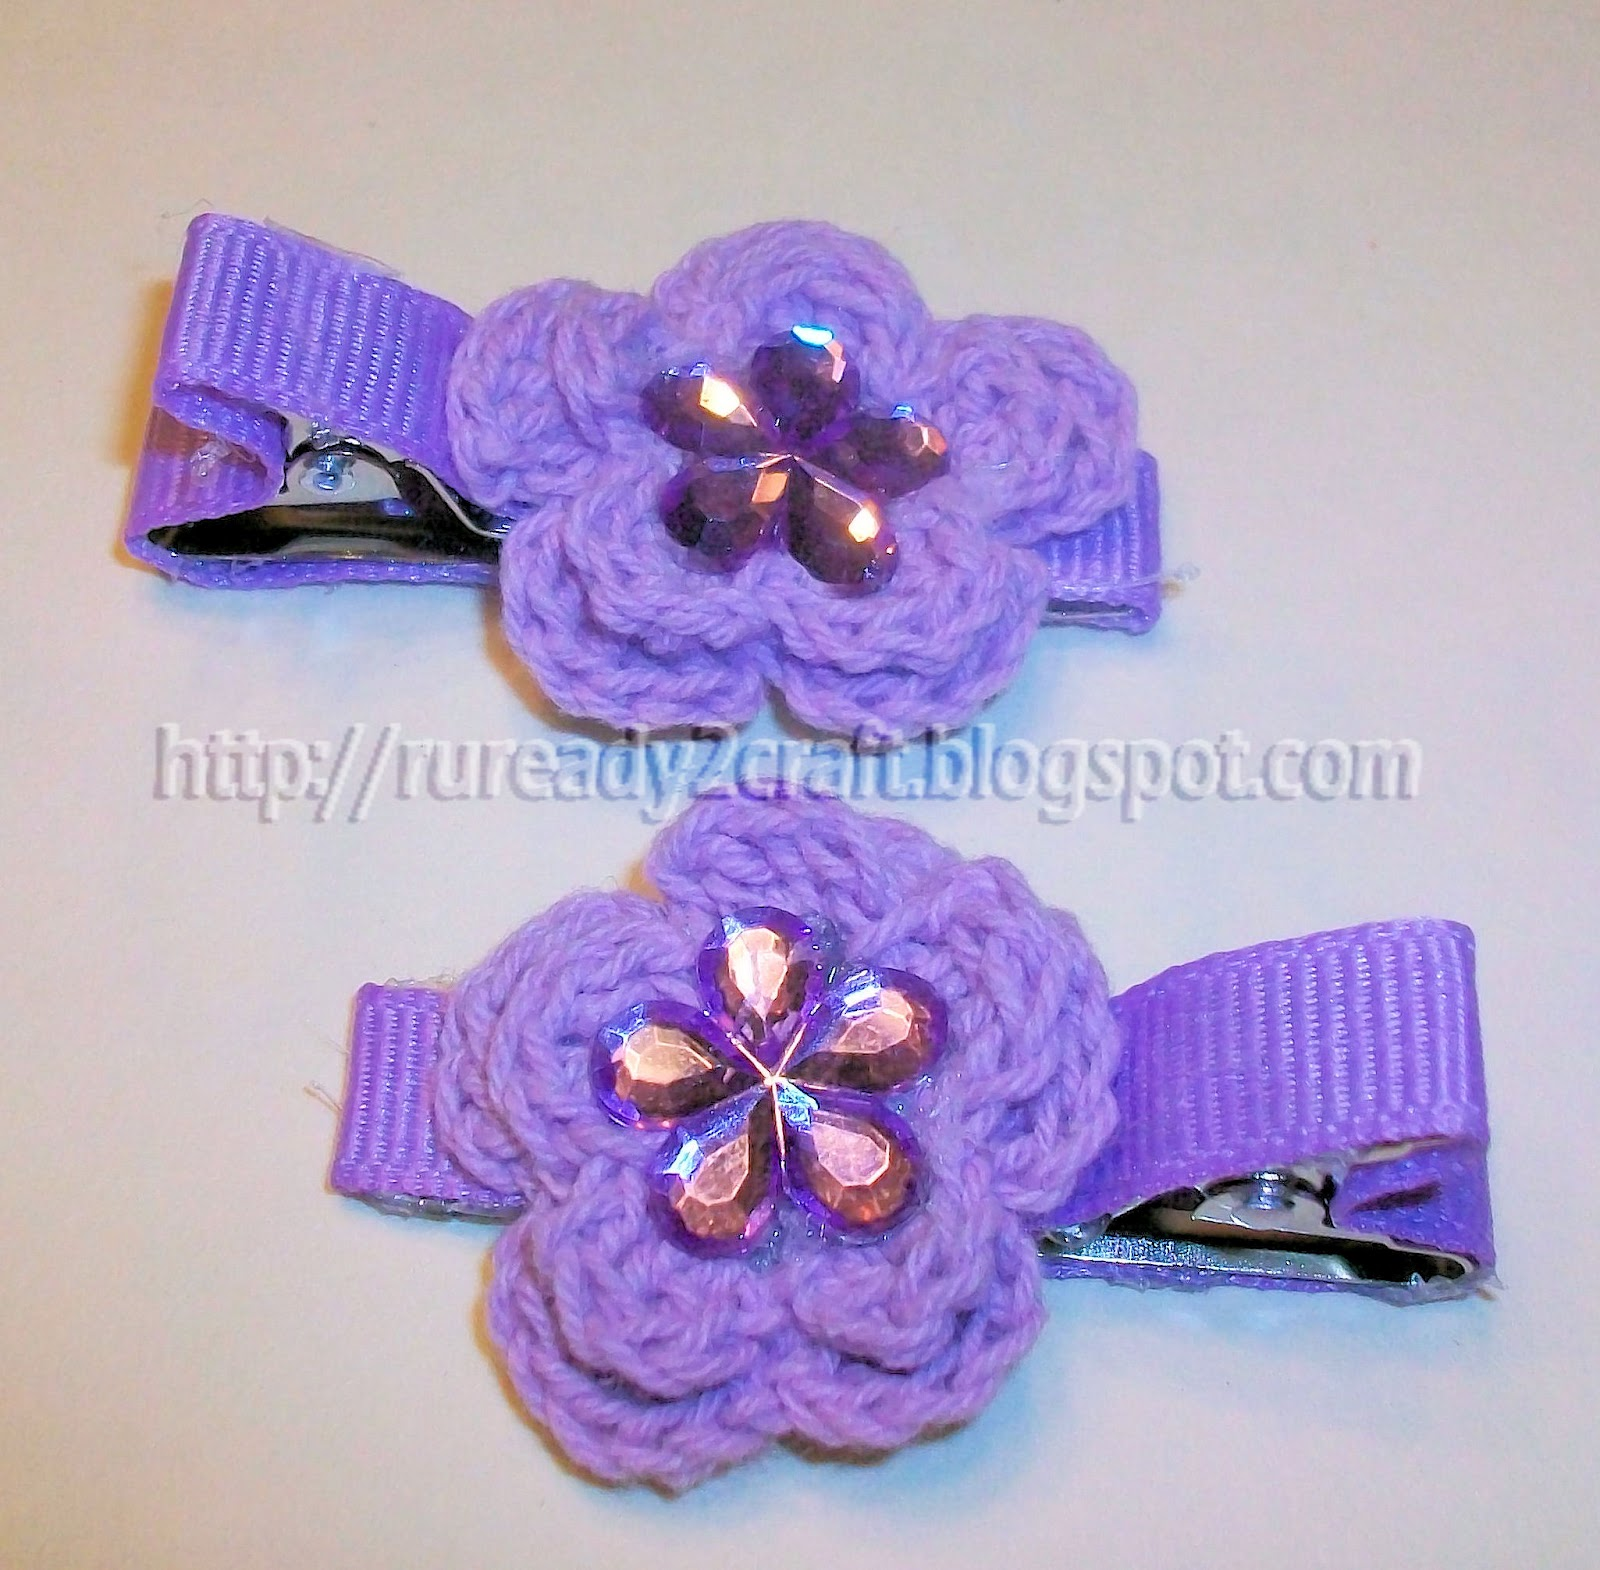 Completed project. Embellished crochet flower hair bows.